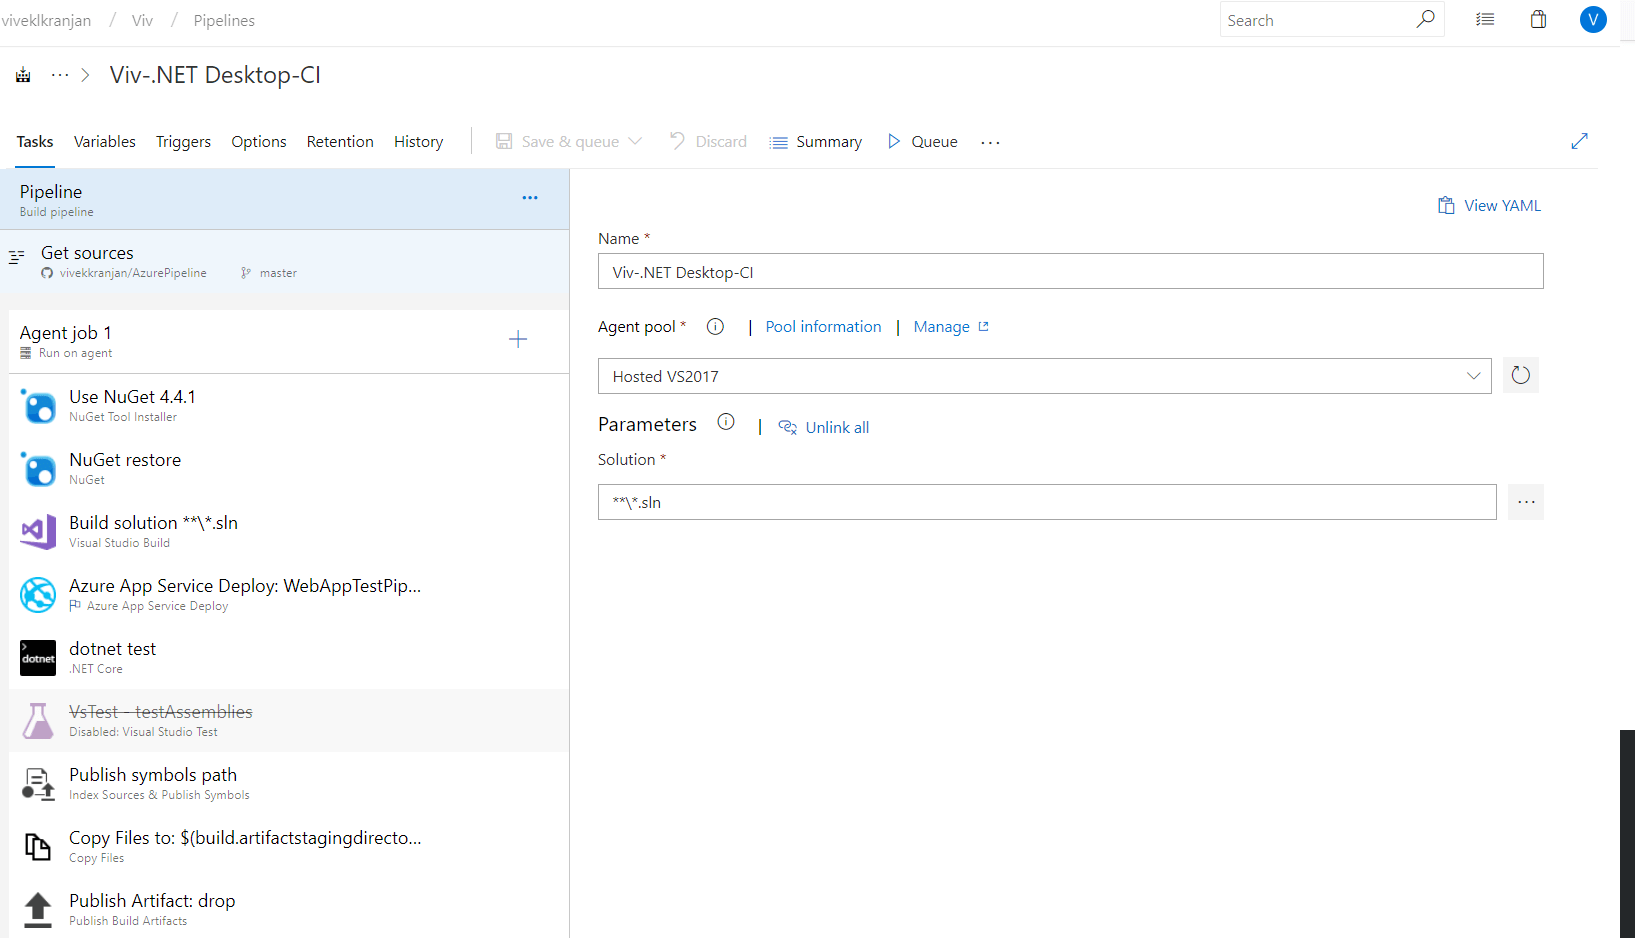 Azure CI/CD Pipeline. Running .net core build and test in